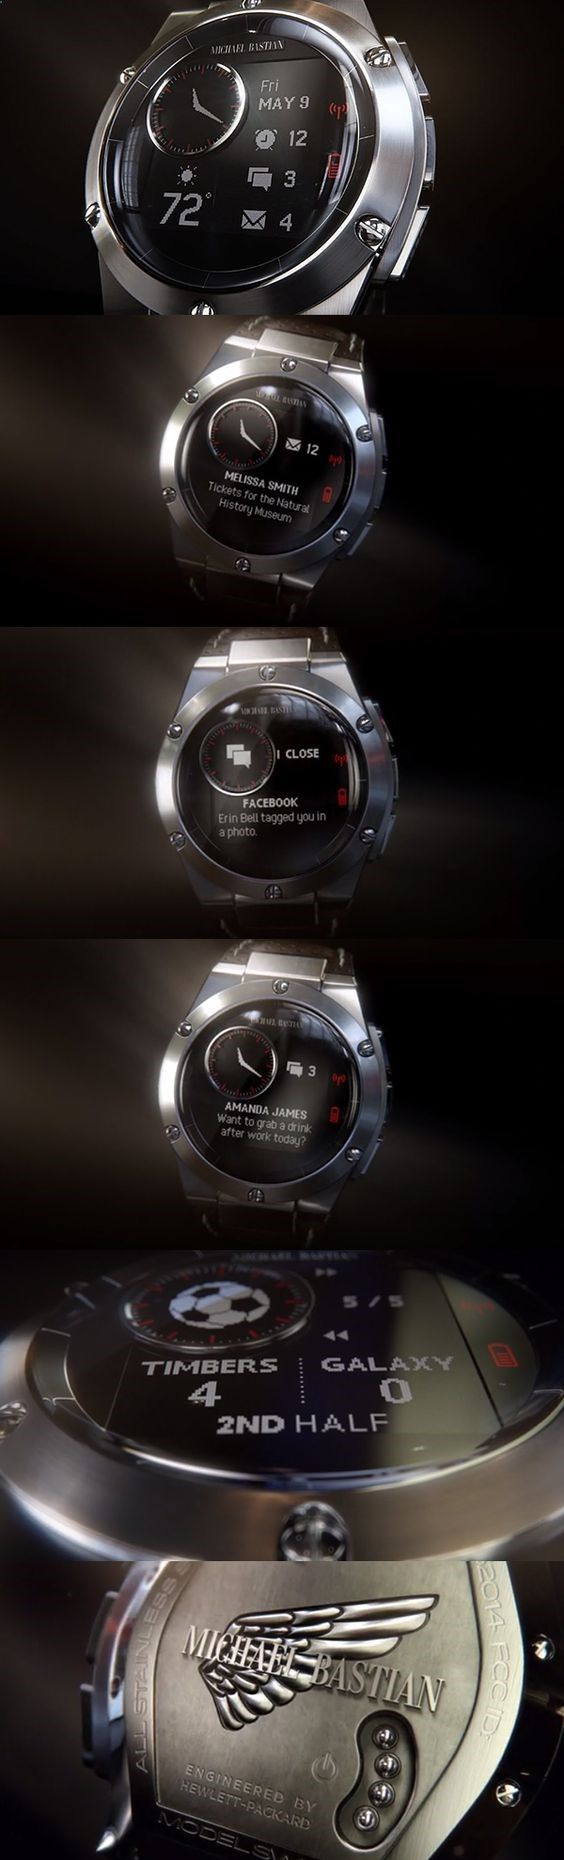 Tips For Choosing Smartwatch HPs fashion-friendly smartwatch designed by Michael Bastian. - If you want to buy a smartwatch and you do not know which one, you need to review well not only the prices, but also which one is right for you. To do this, we give you useful tips to make the best choice.